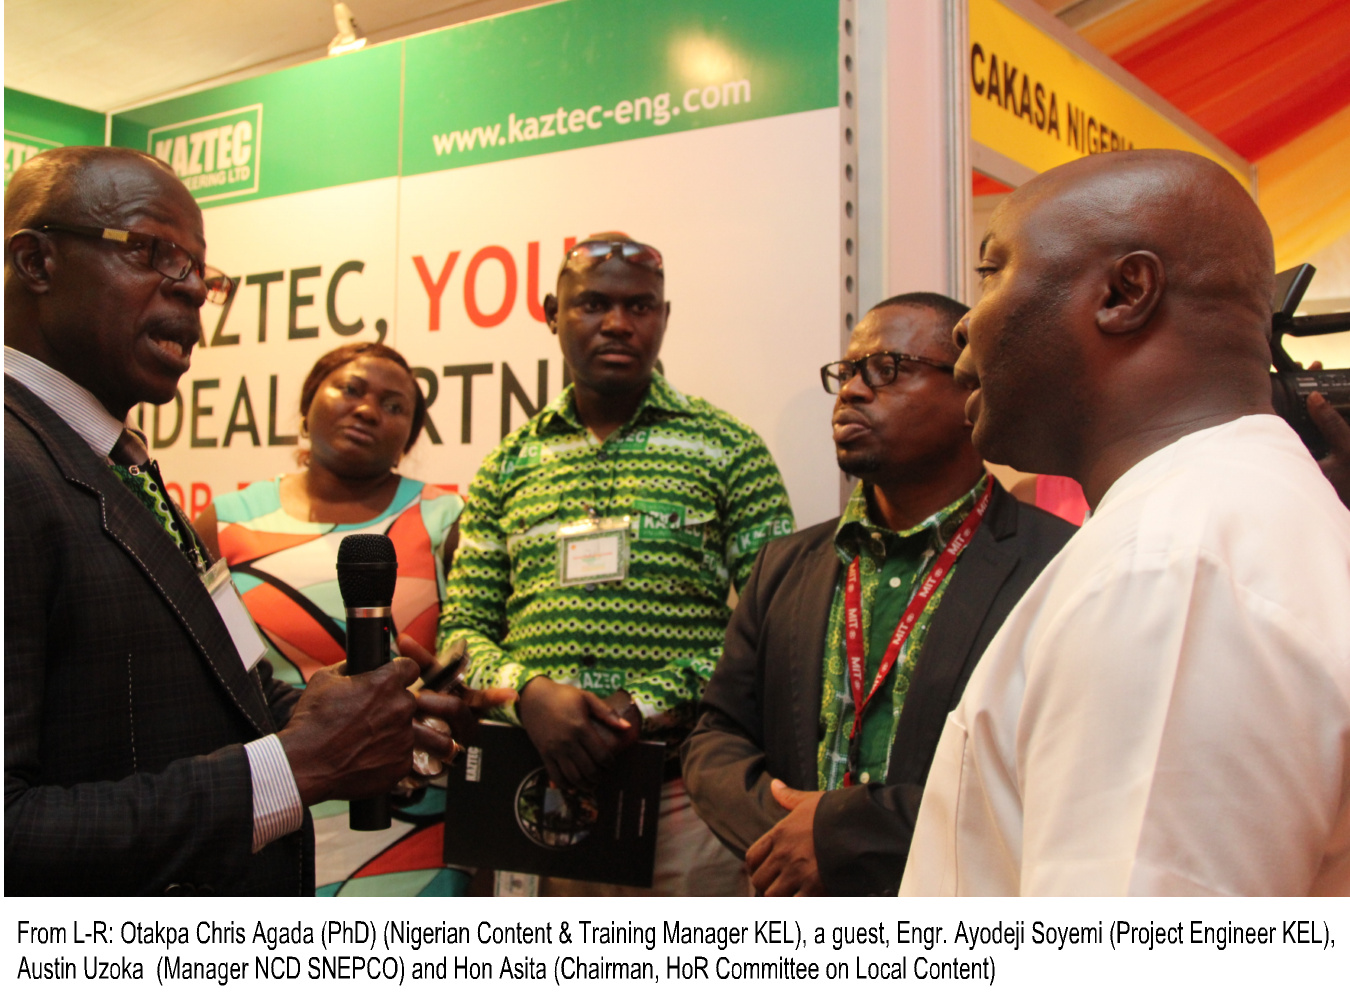 Kaztec Participated in the 2013 SHELL Nigerian Content Exhibition